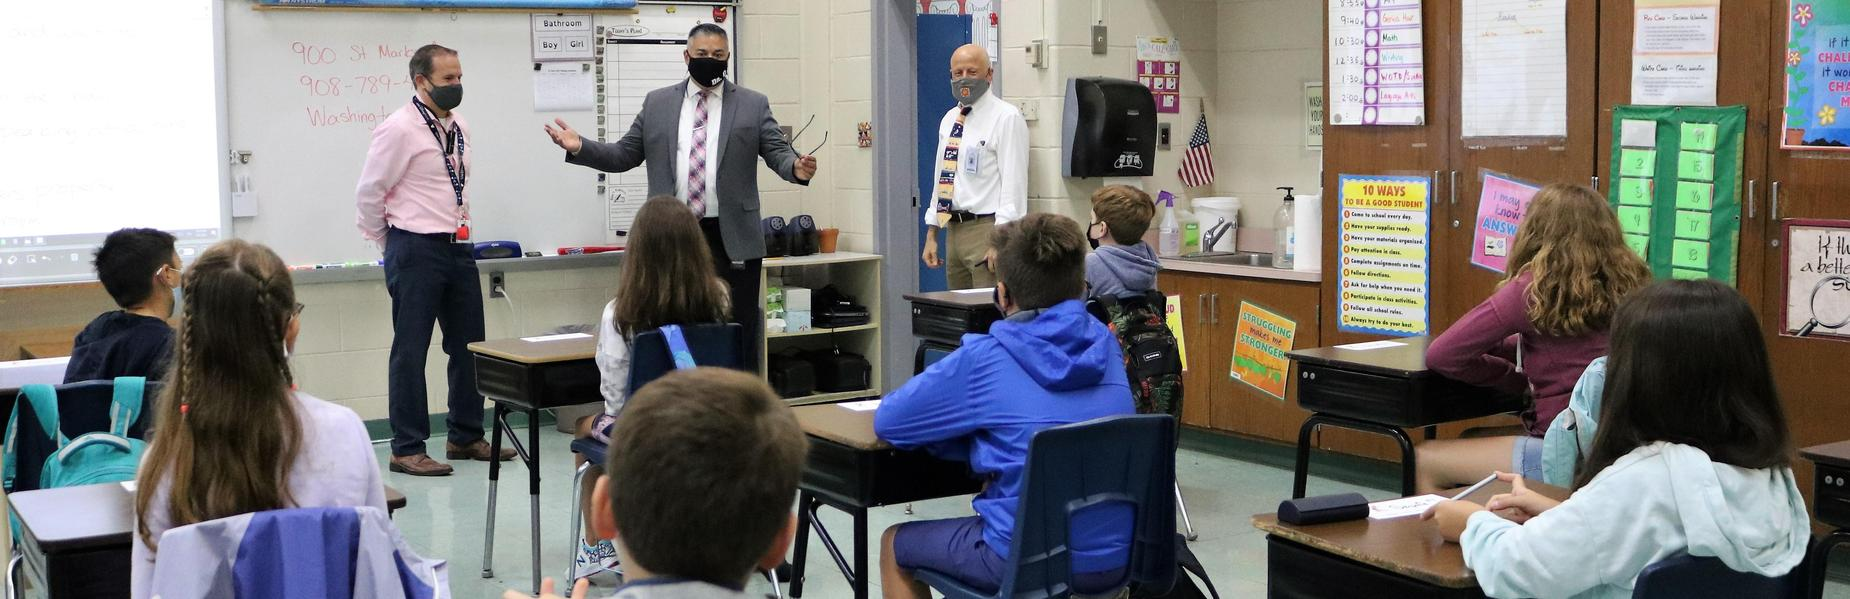 Photo of superintendent, principal, and teacher talking to 5th grade class.